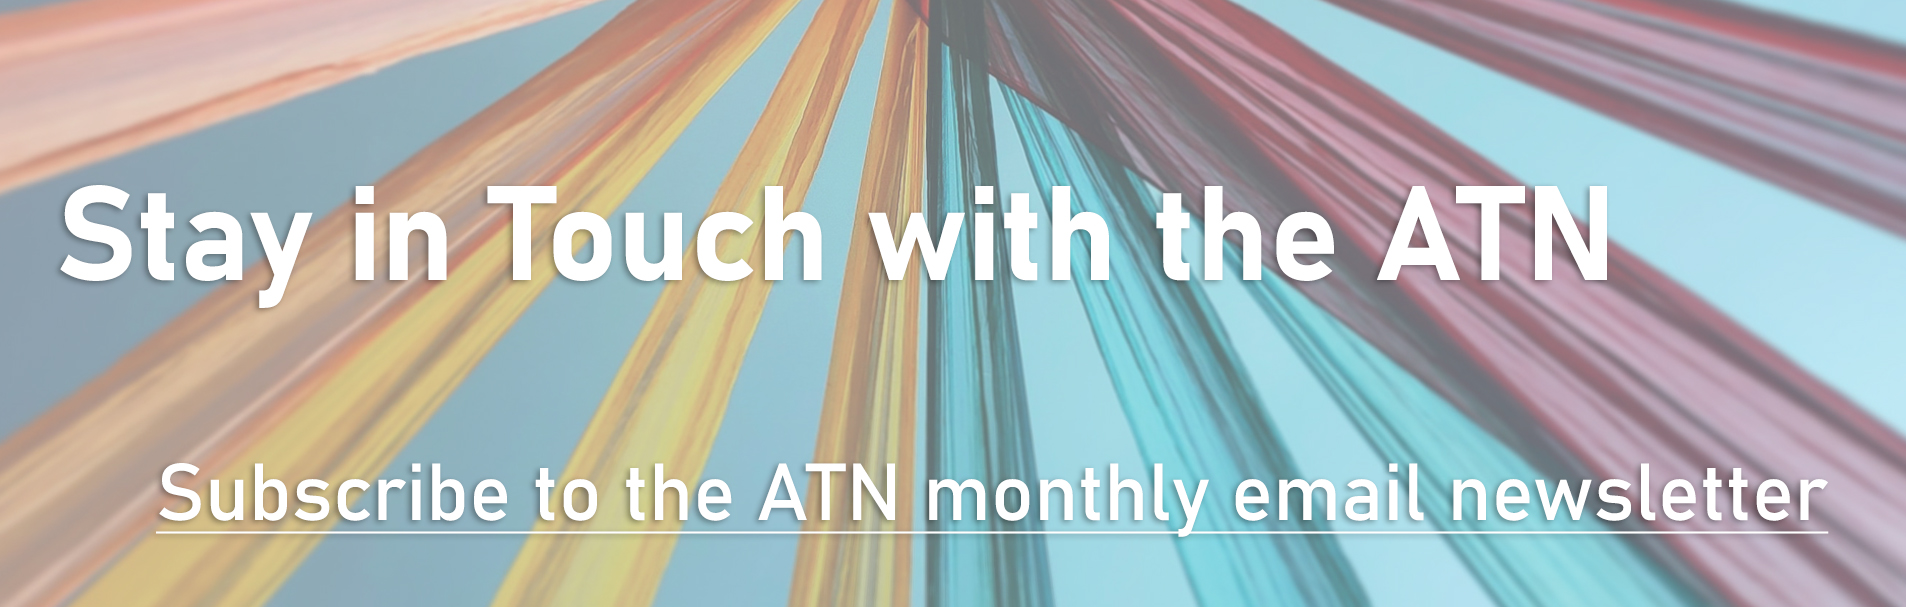 Stay in Touch with the ATN - Subscribe to the ATN monthly email newsletter